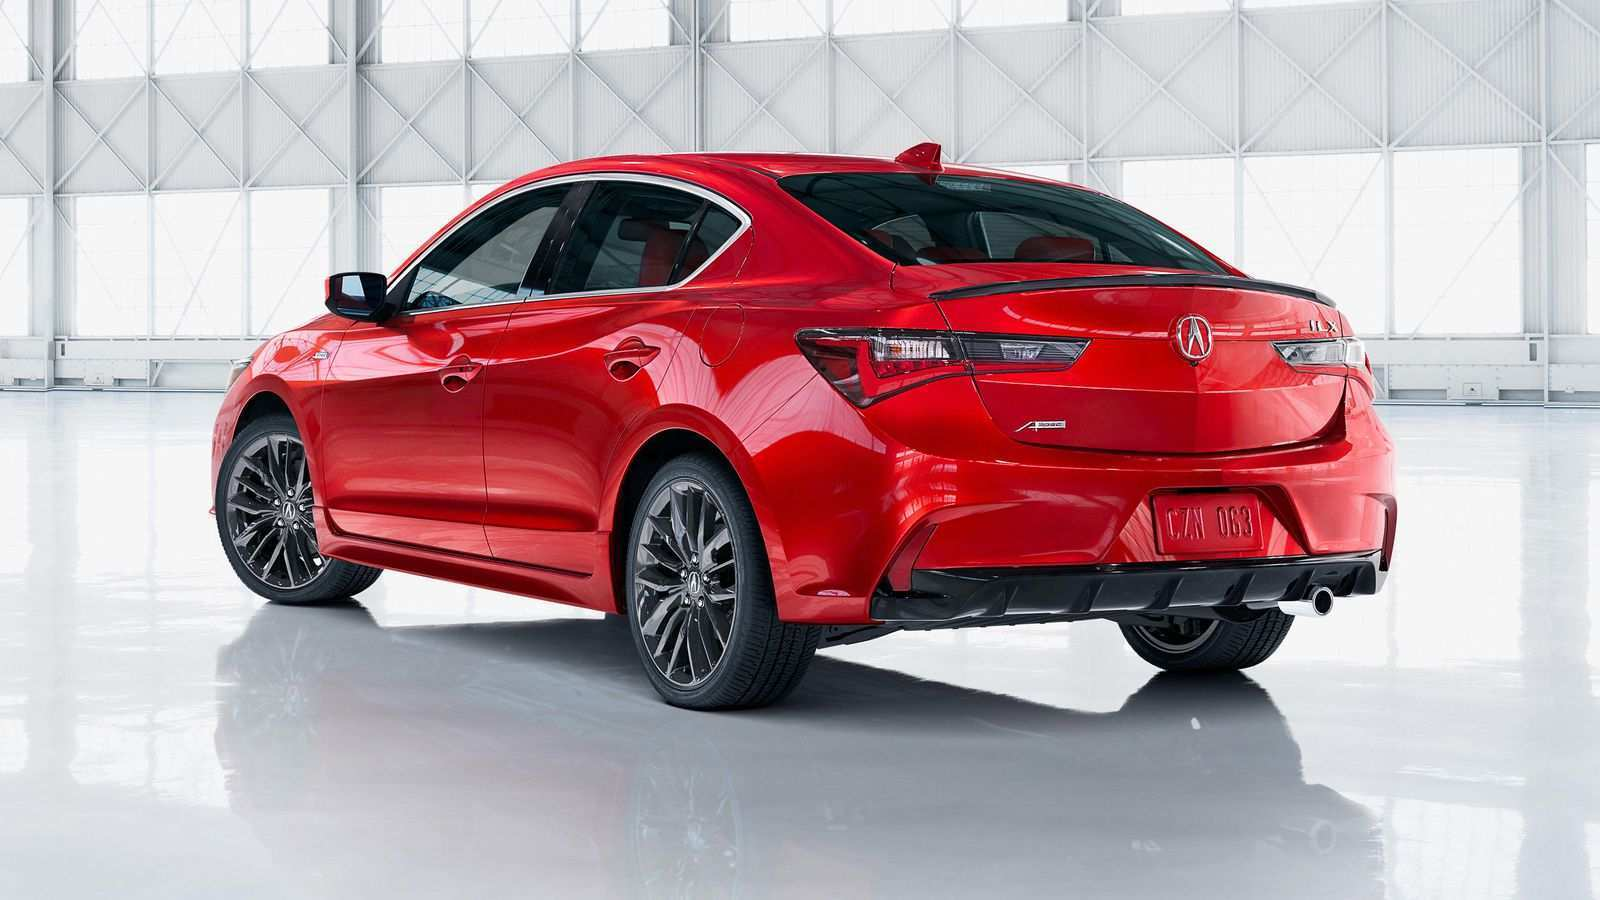 20 New Acura Hatchback 2019 Specs